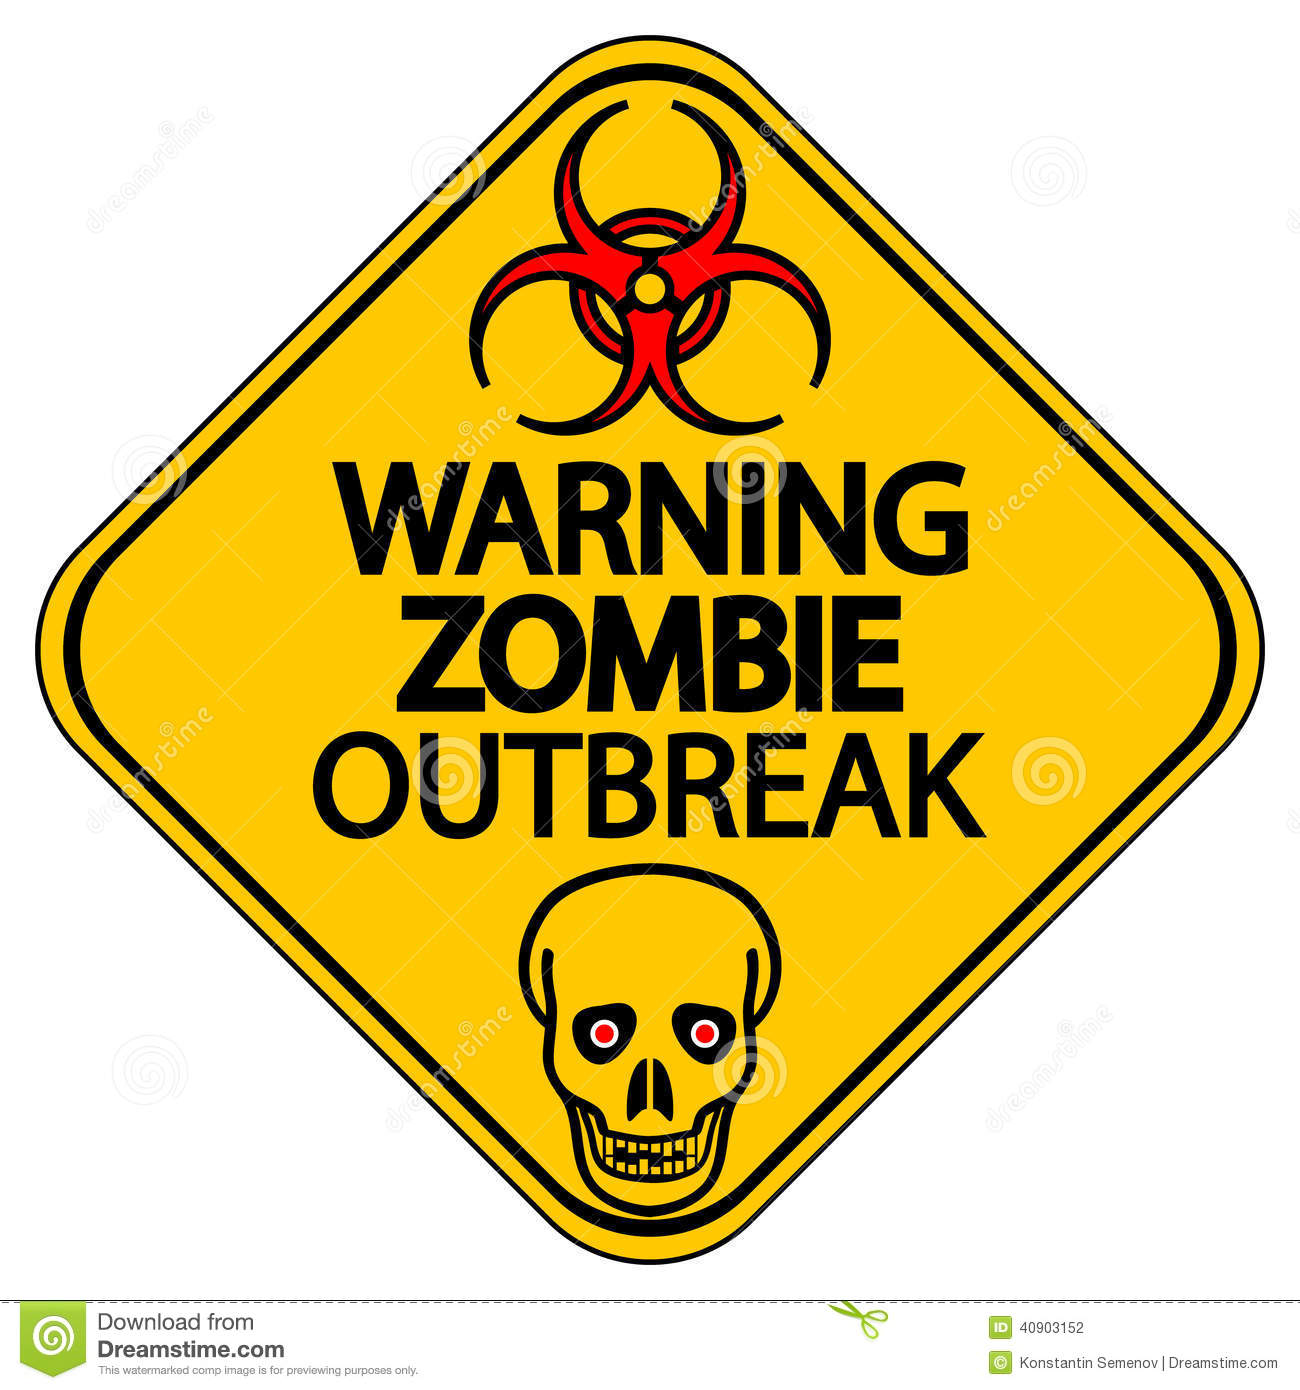 Warning Zombie Outbreak Stock Vector - Image: 40903152